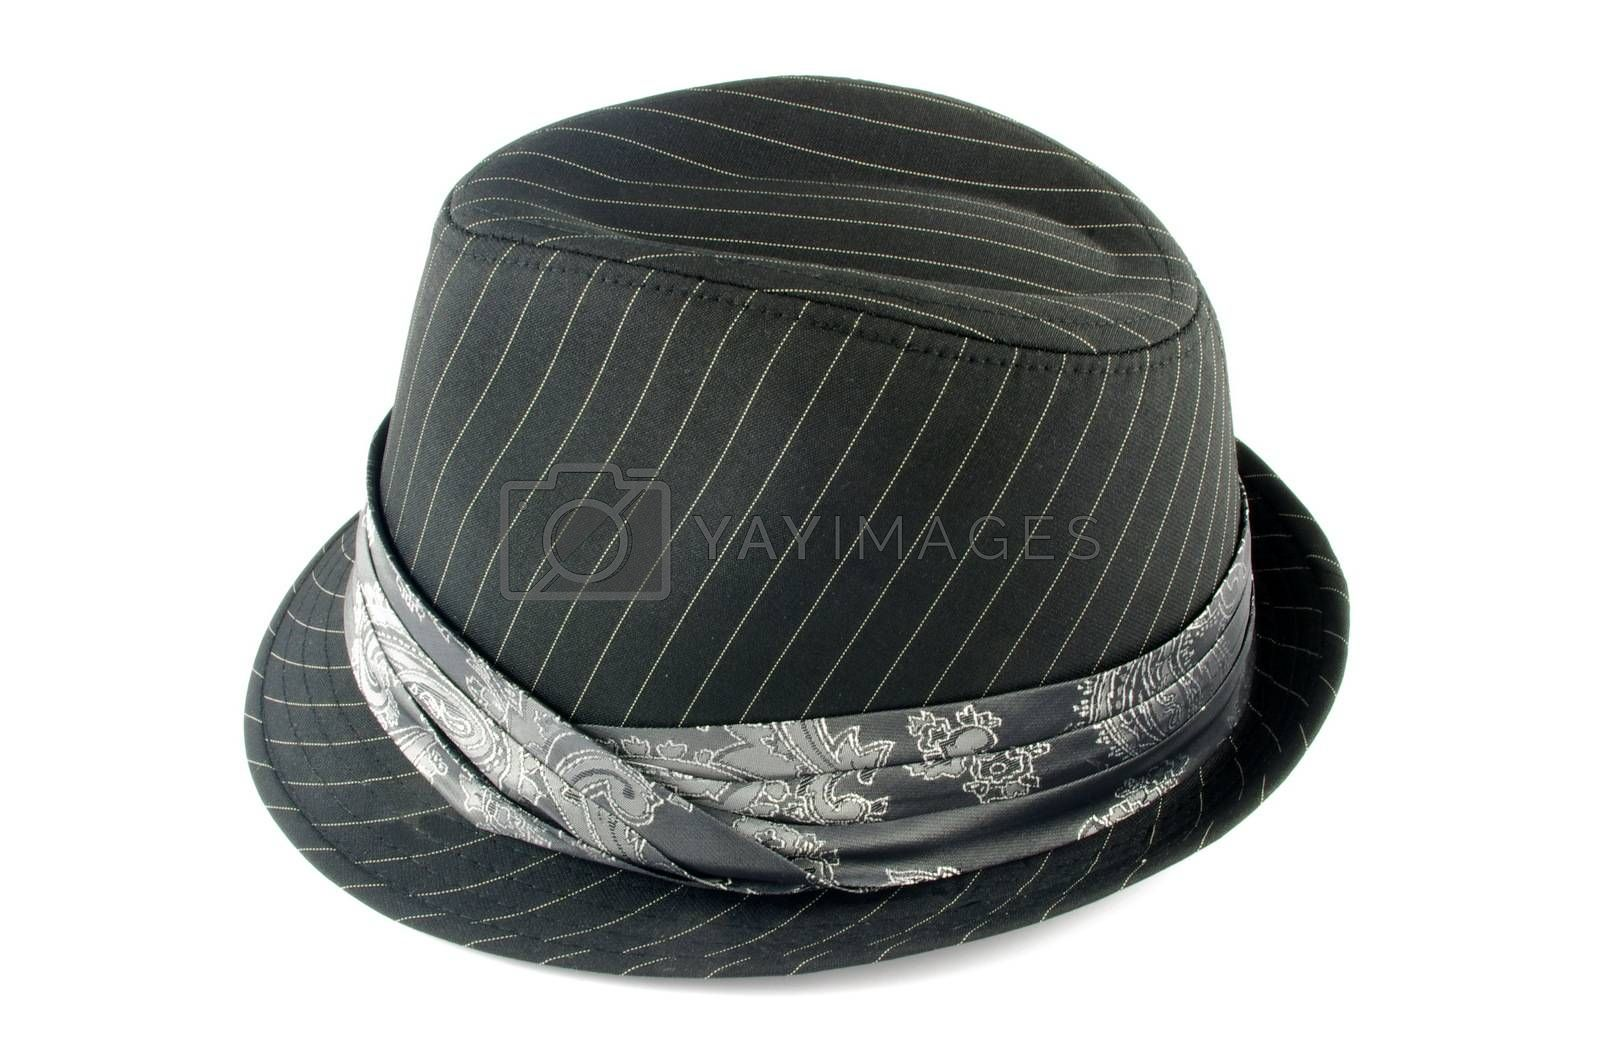 hat isolated above white surface